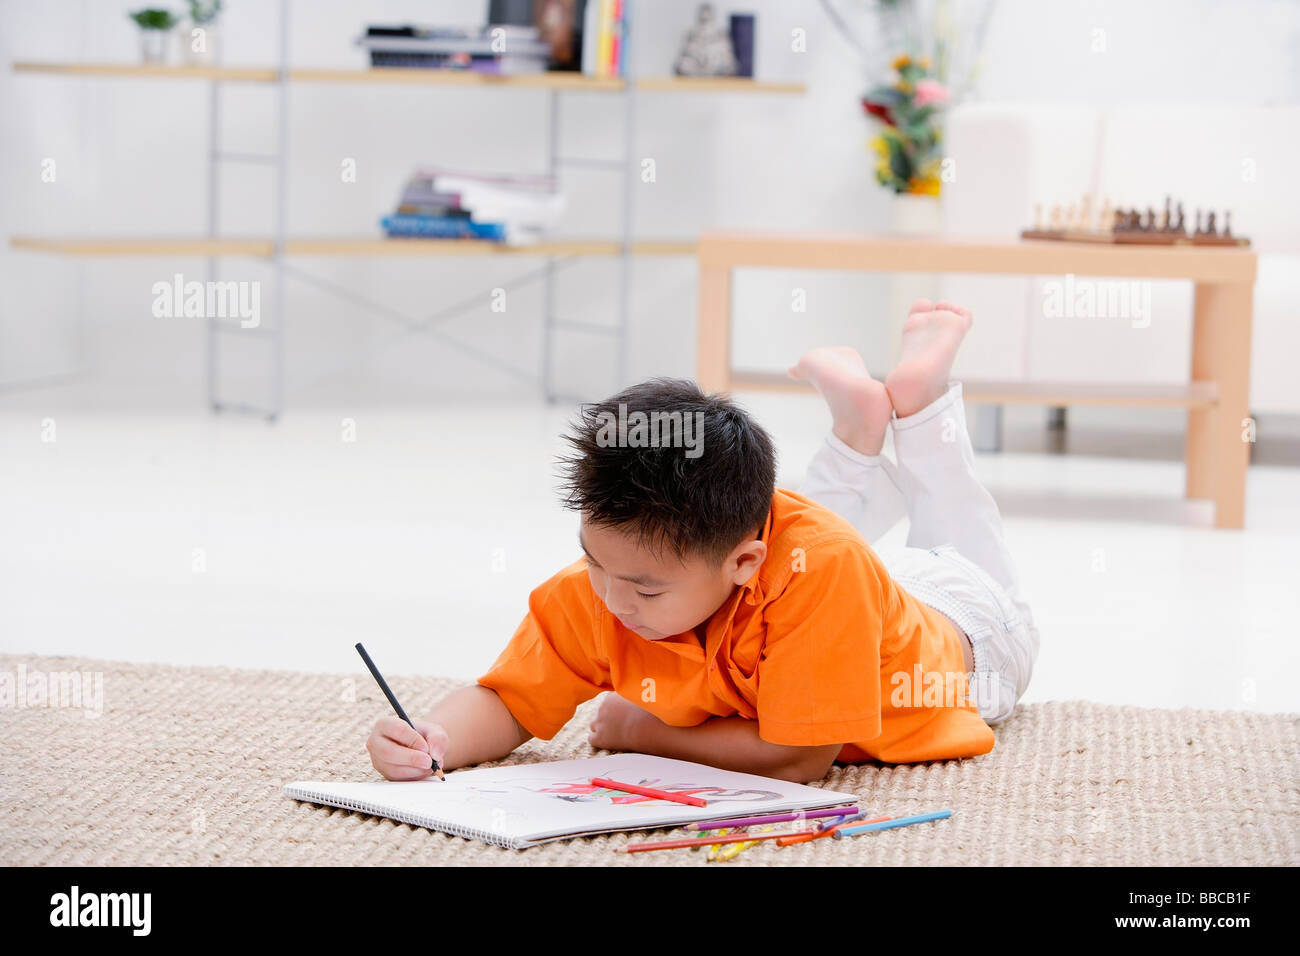 Boy lying on floor with sketch pad